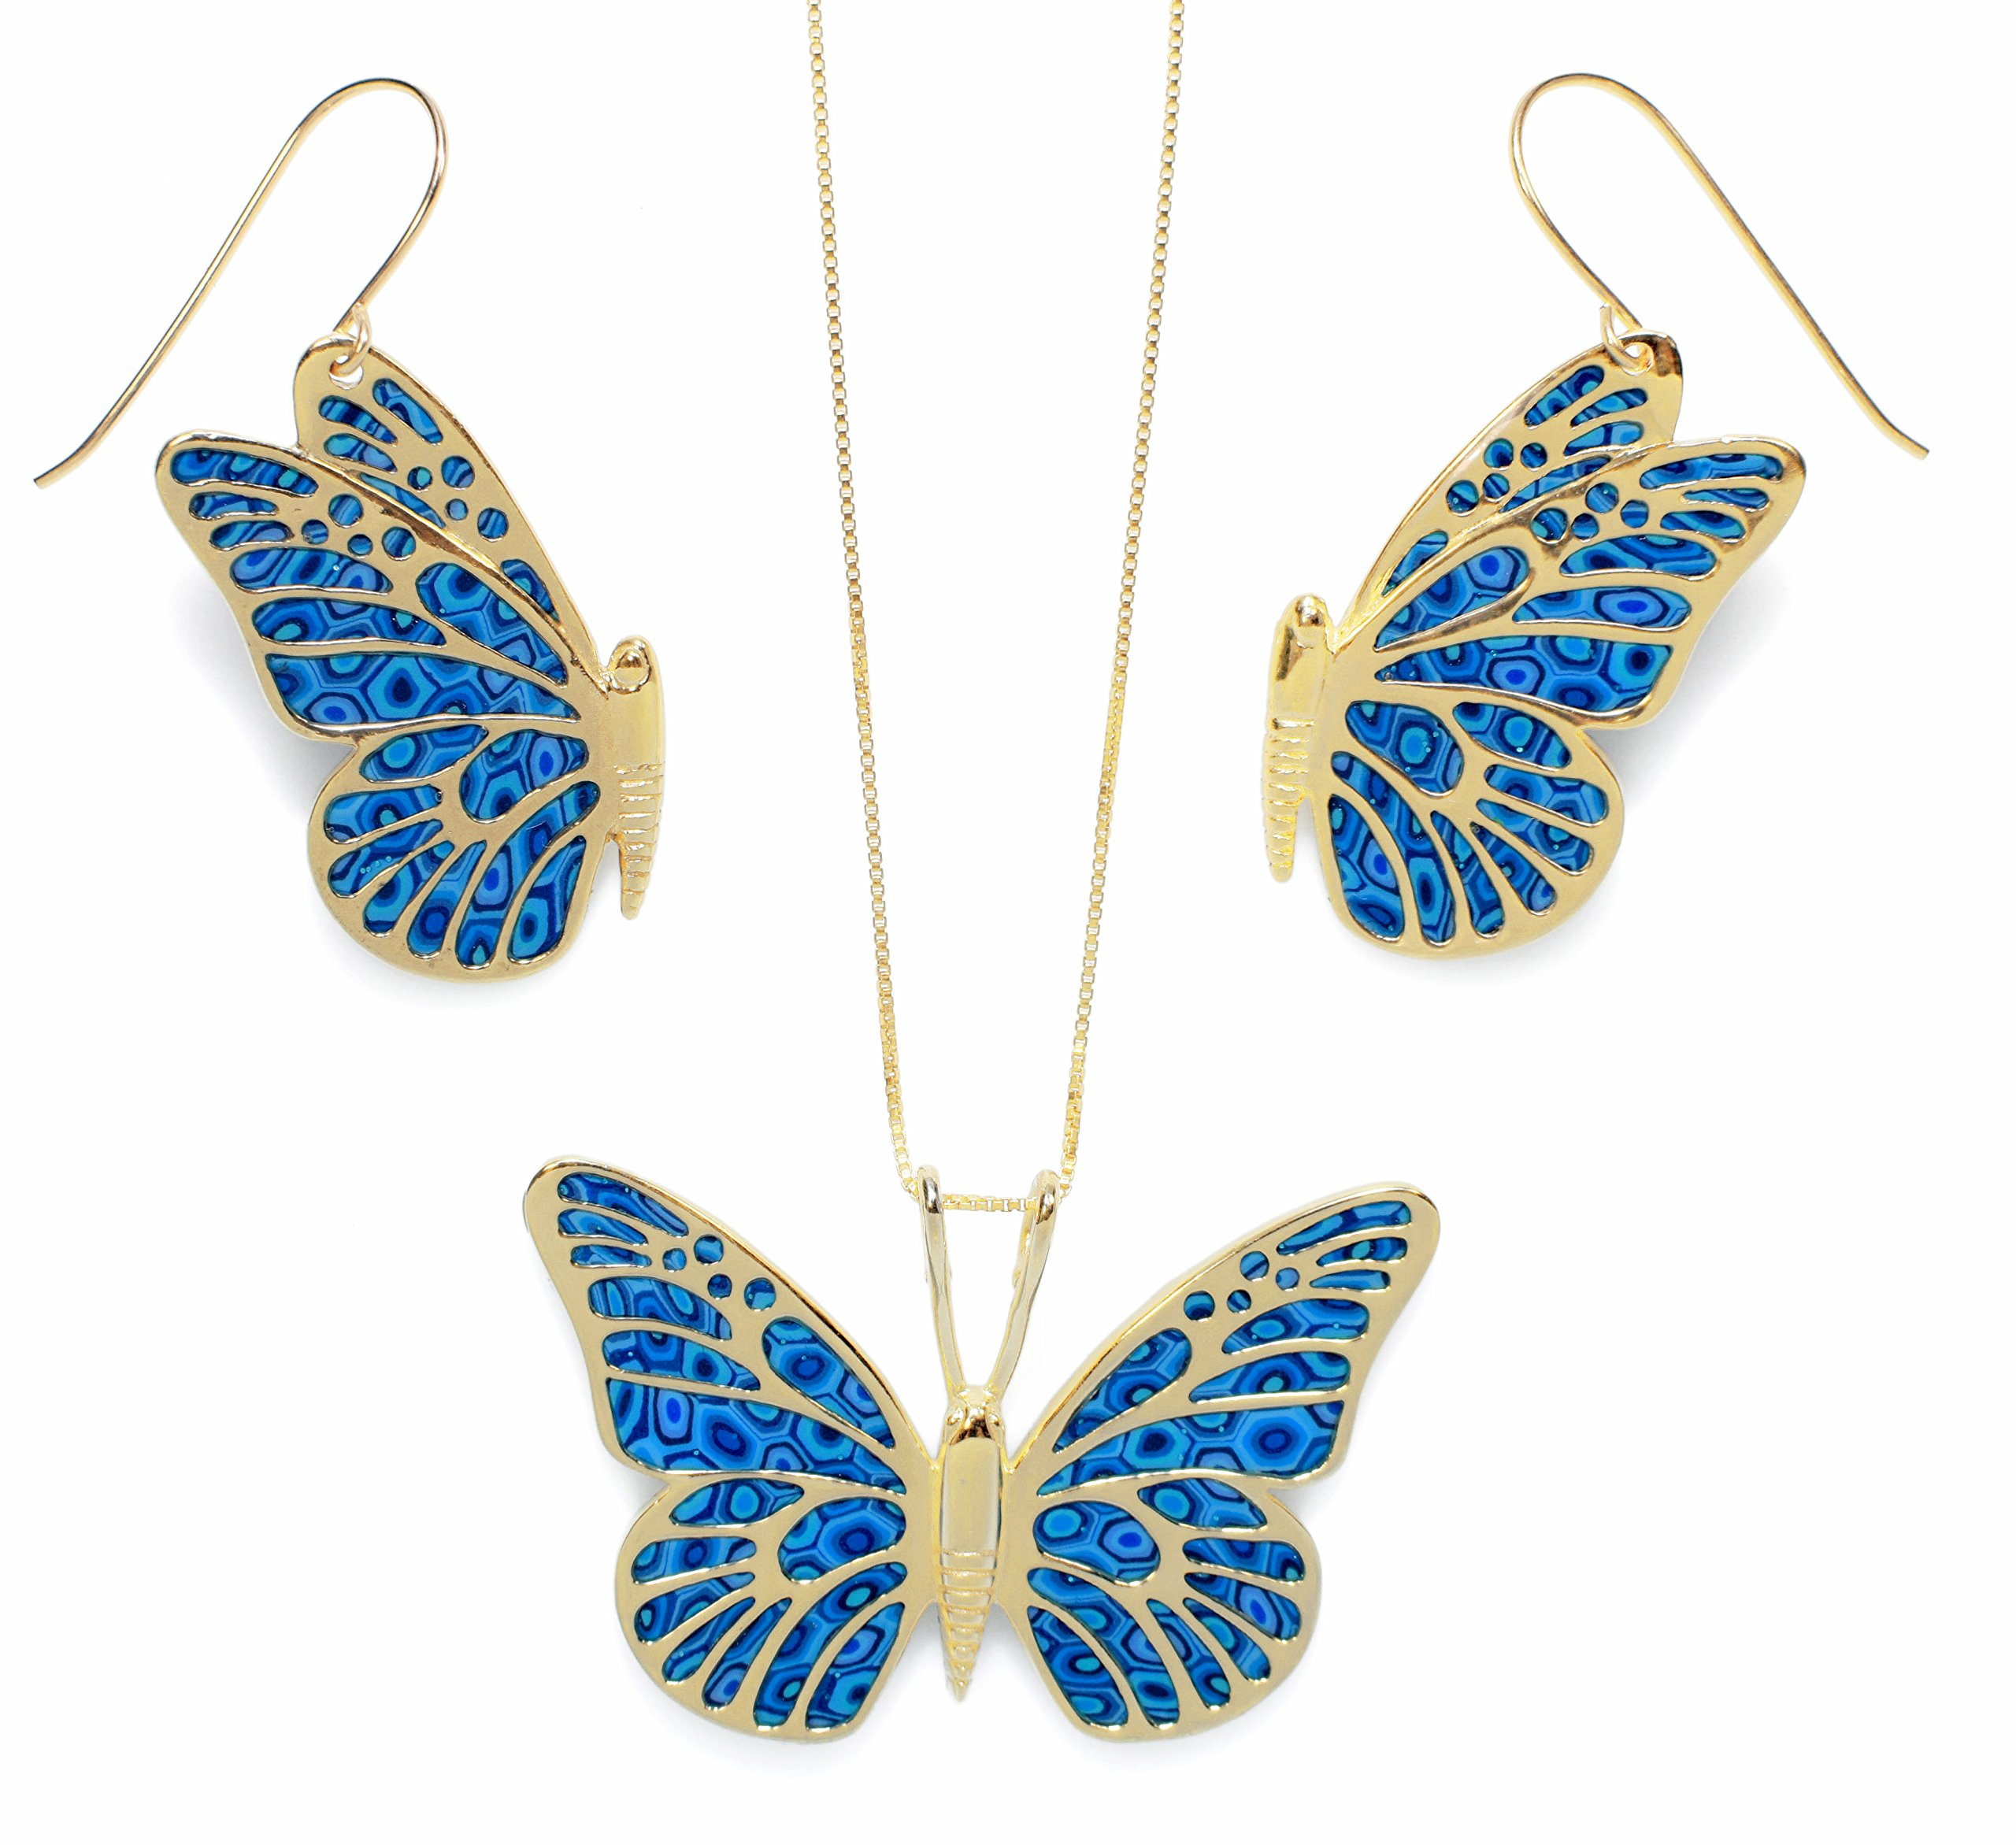 Gold Plated Sterling Silver Butterfly Necklace Pendant and Dangle Earrings Blue Polymer Clay Jewelry Set, 16.5'' Gold Filled Chain